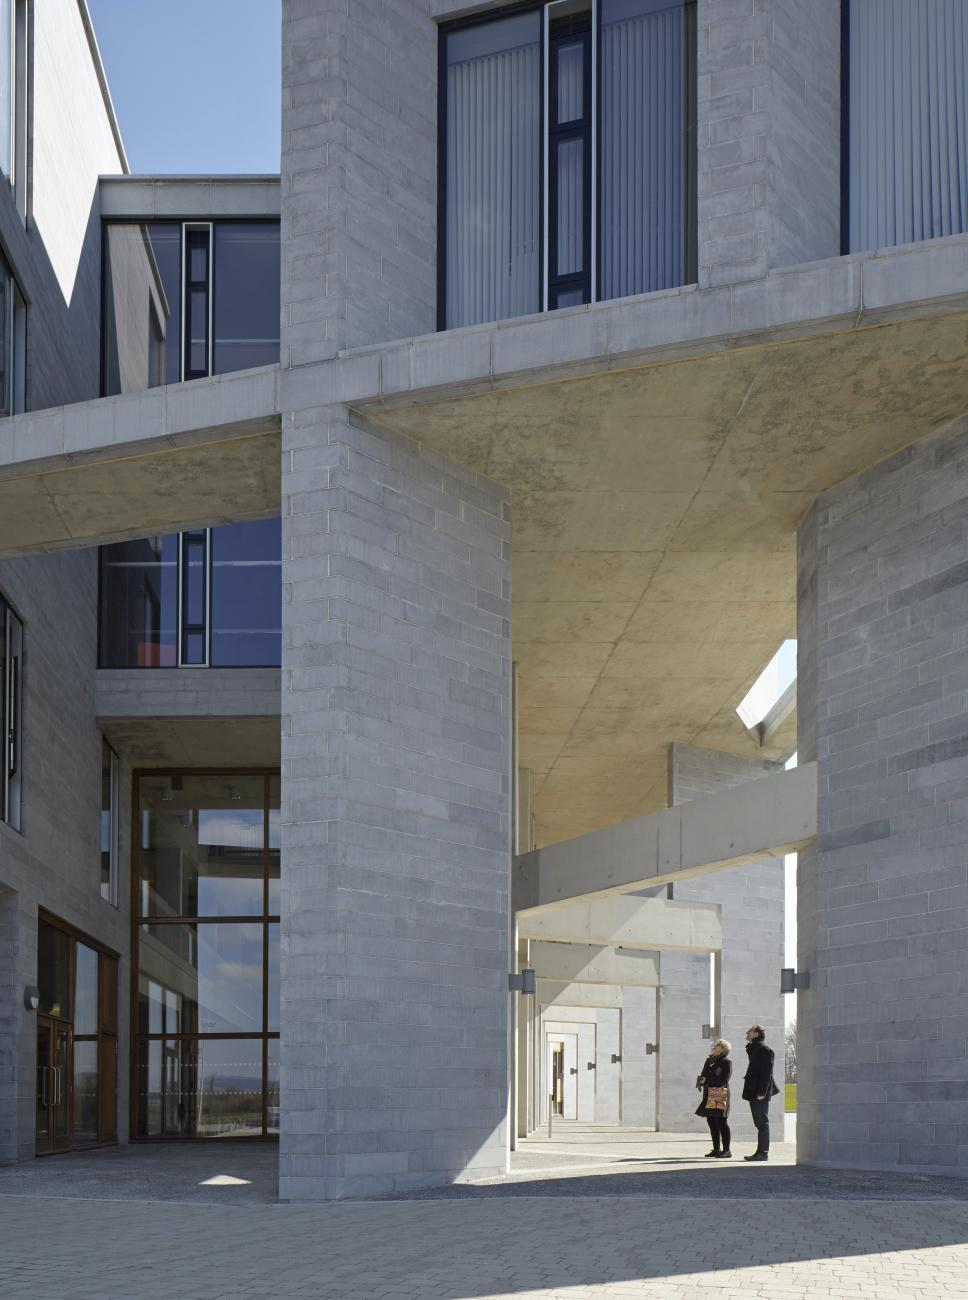 Medical School, University of Limerick by Grafton Architects in Ireland, 2012- Photo: courtesy of Dennis Gilbert.